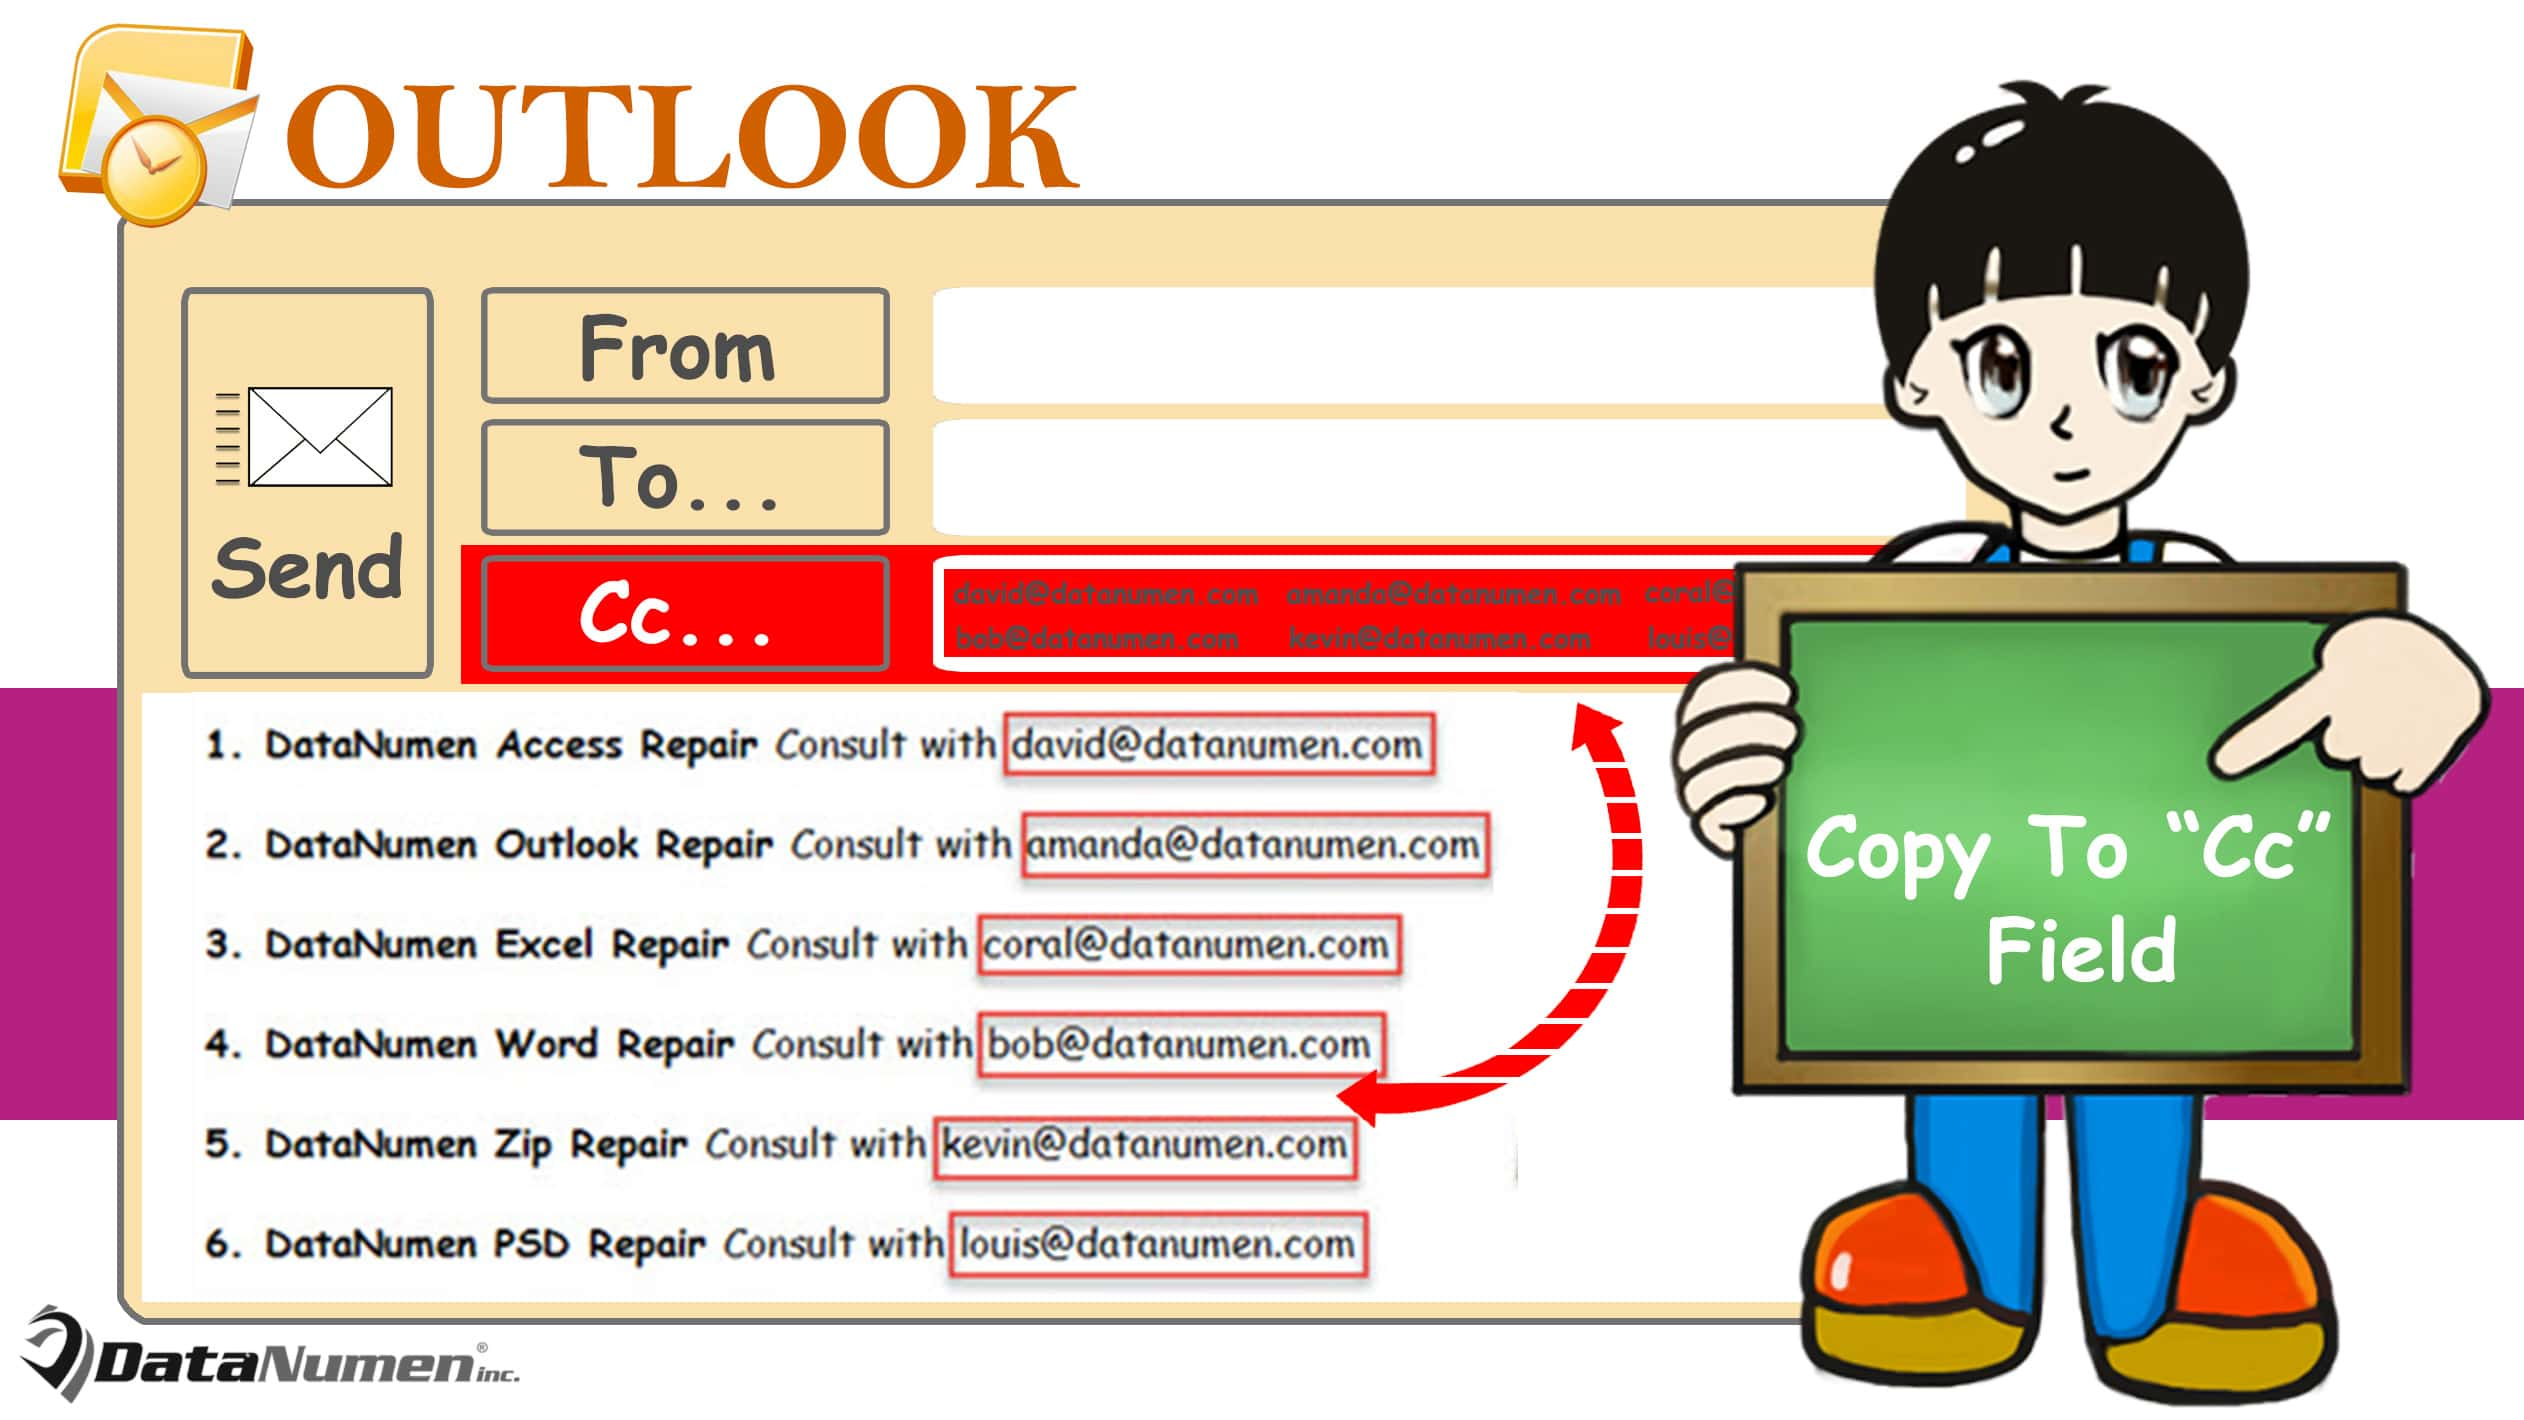 """Copy All Email Addresses Occurring in Body to """"CC"""" Field When Composing an Outlook Email"""